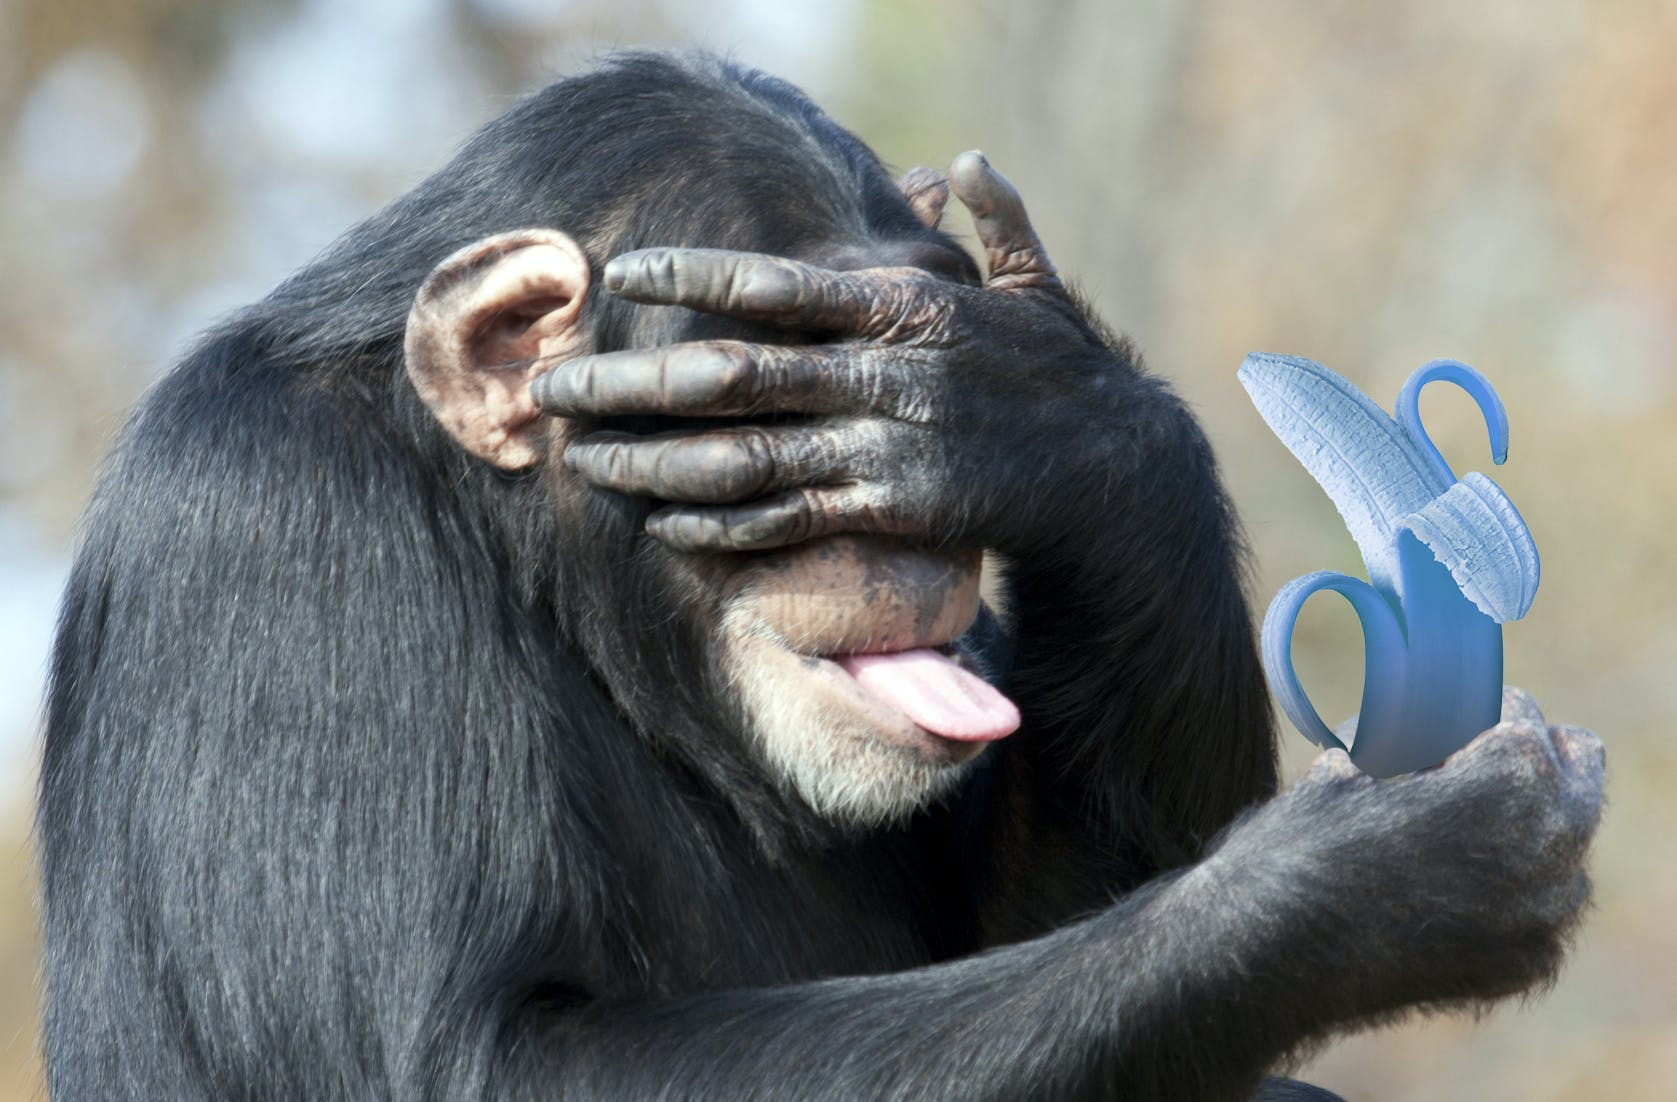 chimp disgusted at a blue banana